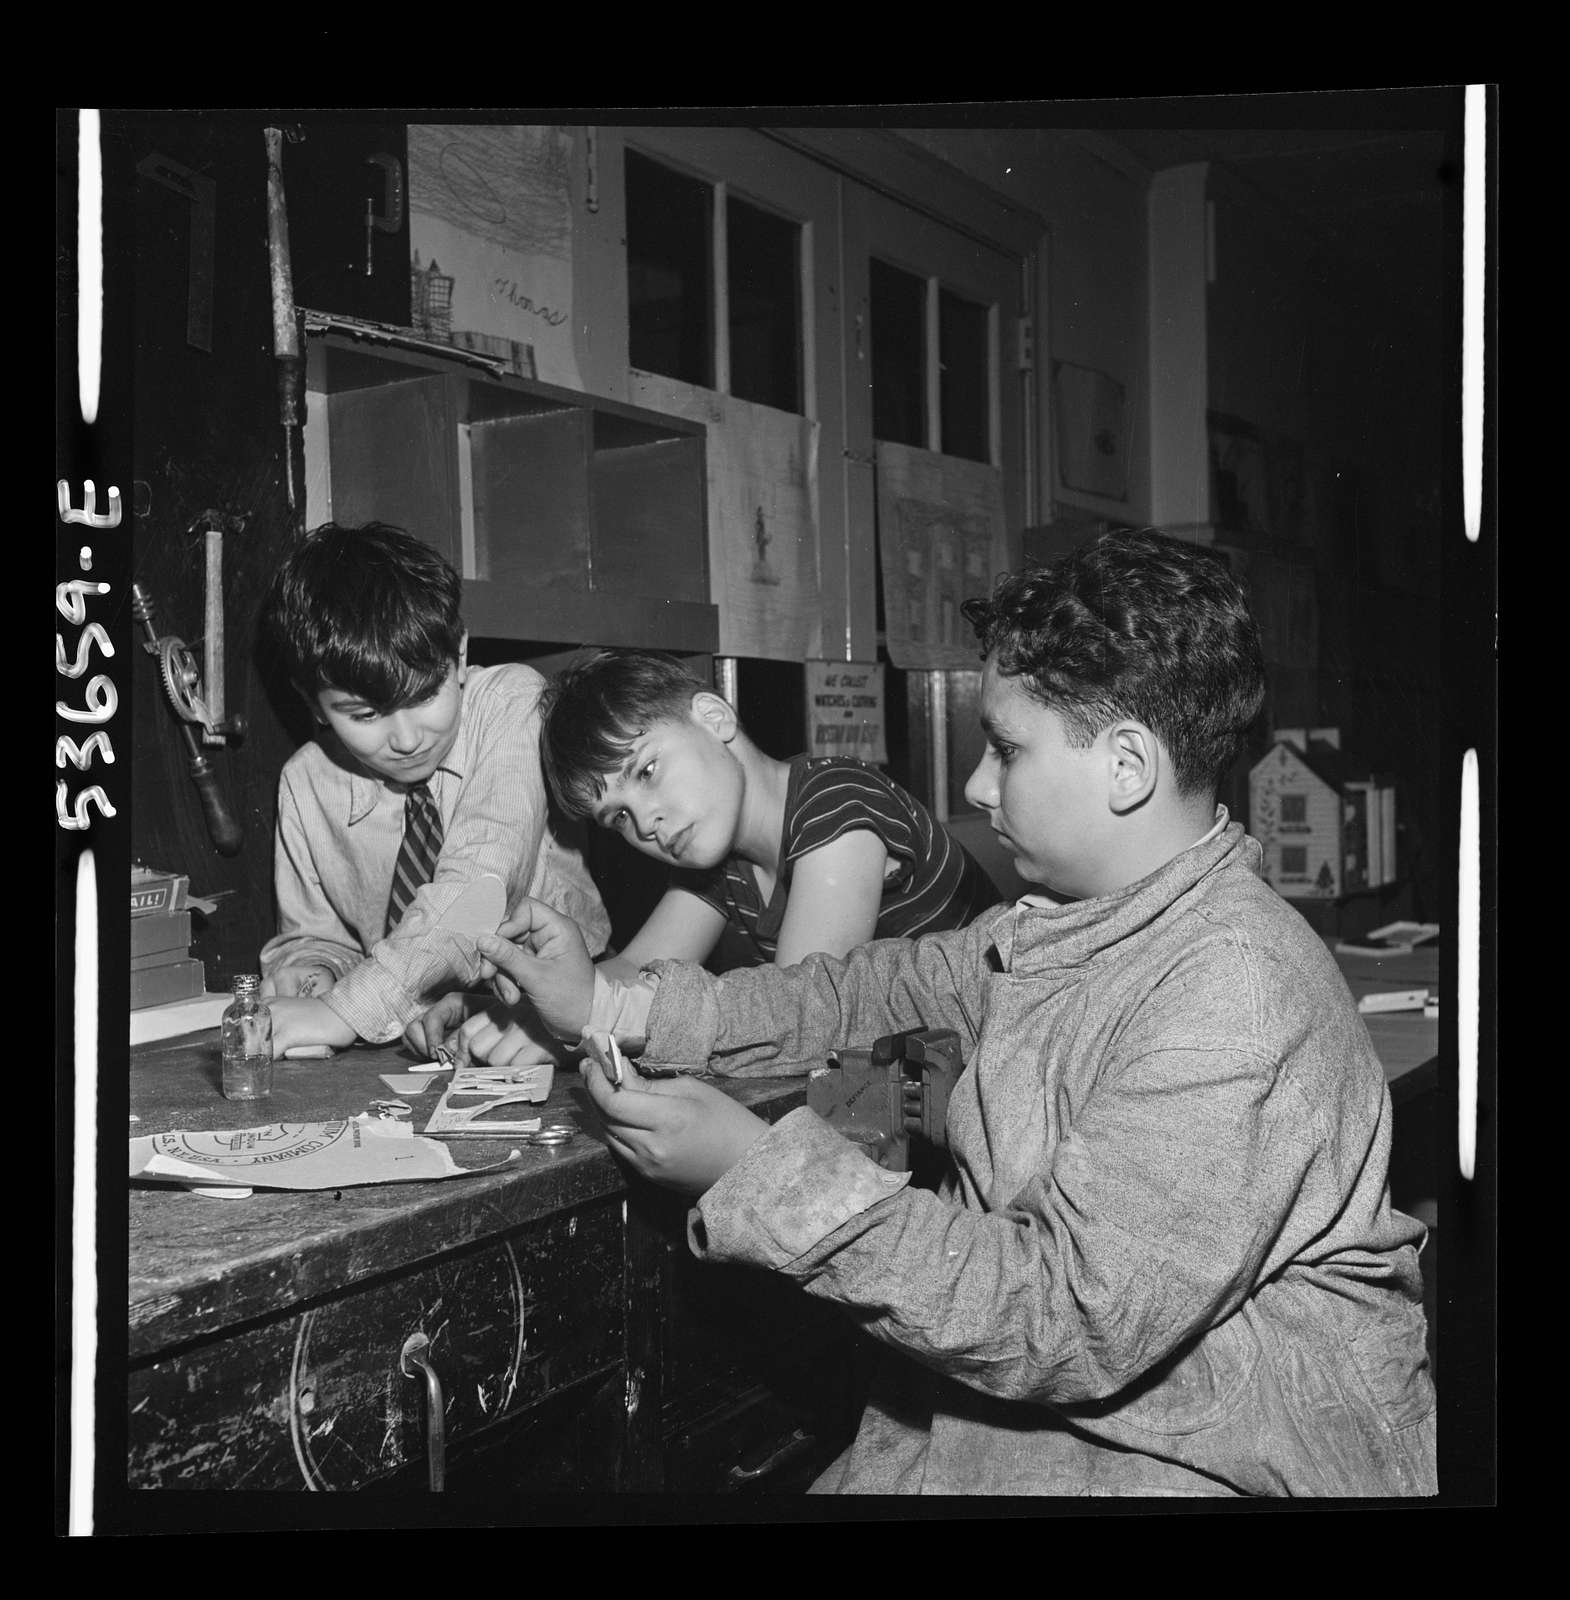 New York, New York. A fifteen-year-old expert on model airplanes who formerly spent Saturdays at the movies, devoting his time now to the instruction of younger boys enrolled in the after-school program at Greenwich House. Their mothers work